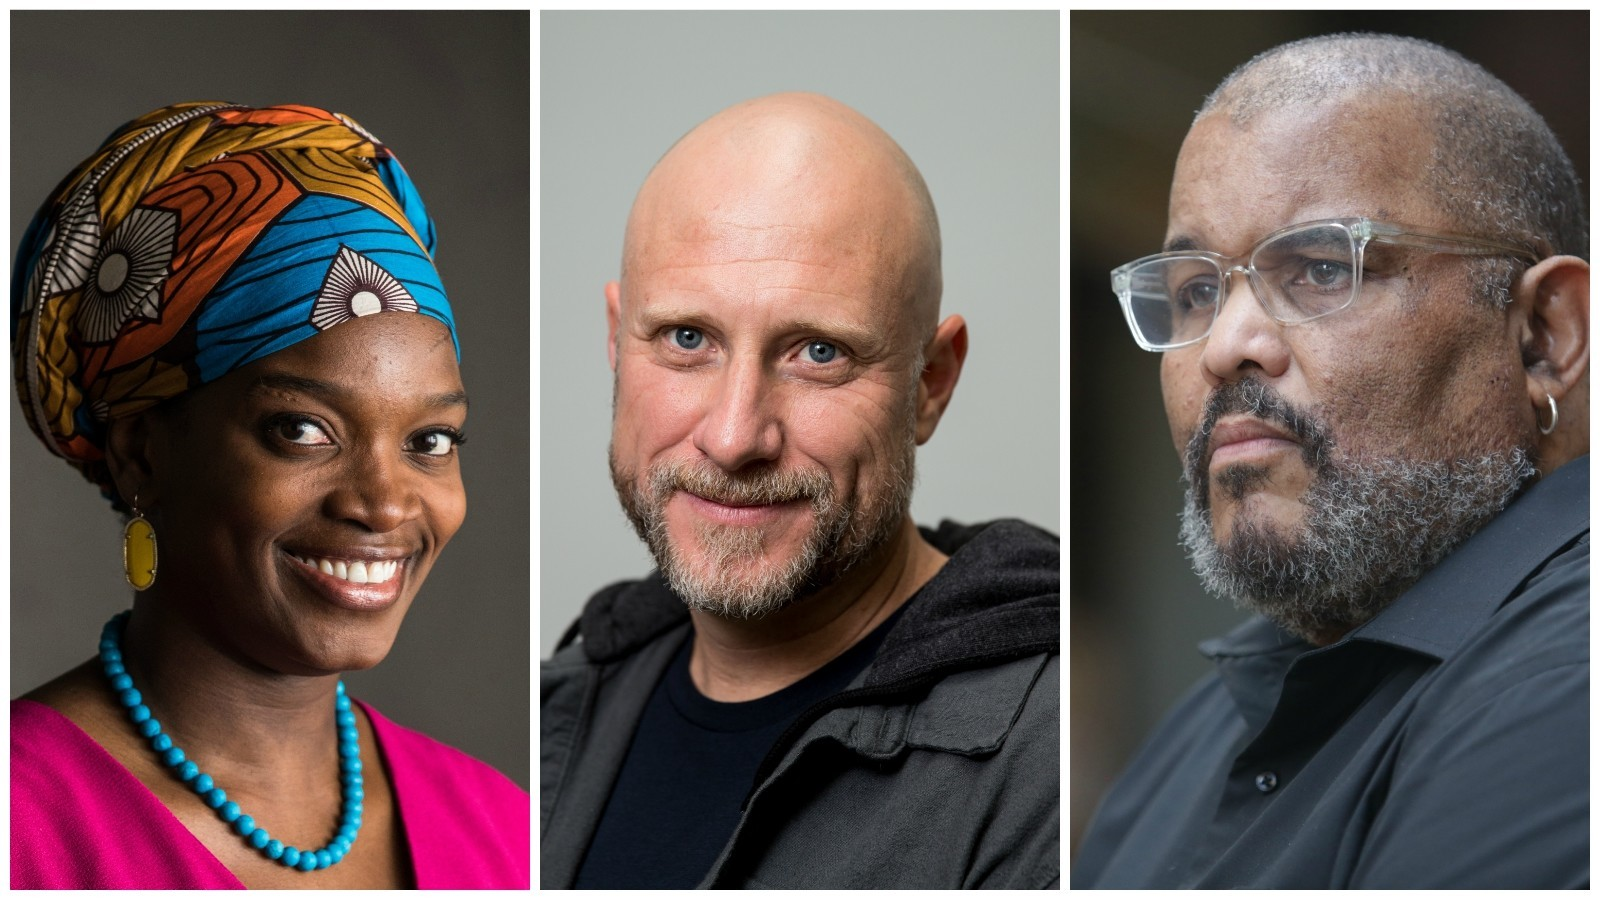 MacArthur fellows, from left: Njideka Akunyili Crosby, Trevor Paglen and Dawoud Bey.